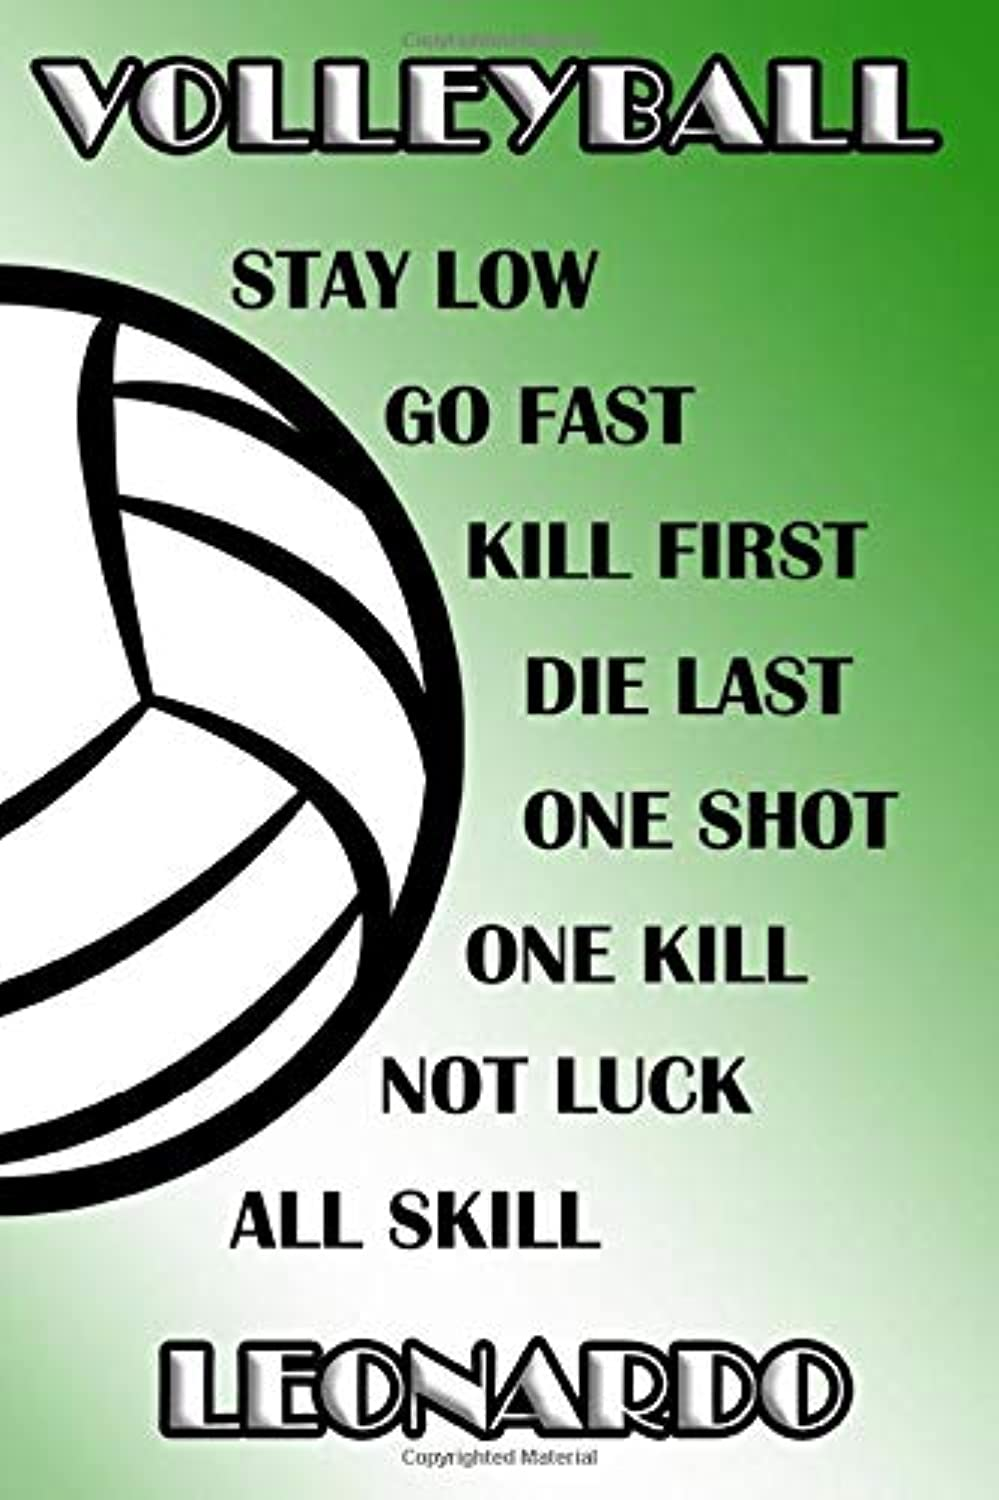 Volleyball Stay Low Go Fast Kill First Die Last One Shot One Kill Not Luck All Skill Leonardo: College Ruled | Composition Book | Green and White School Colors